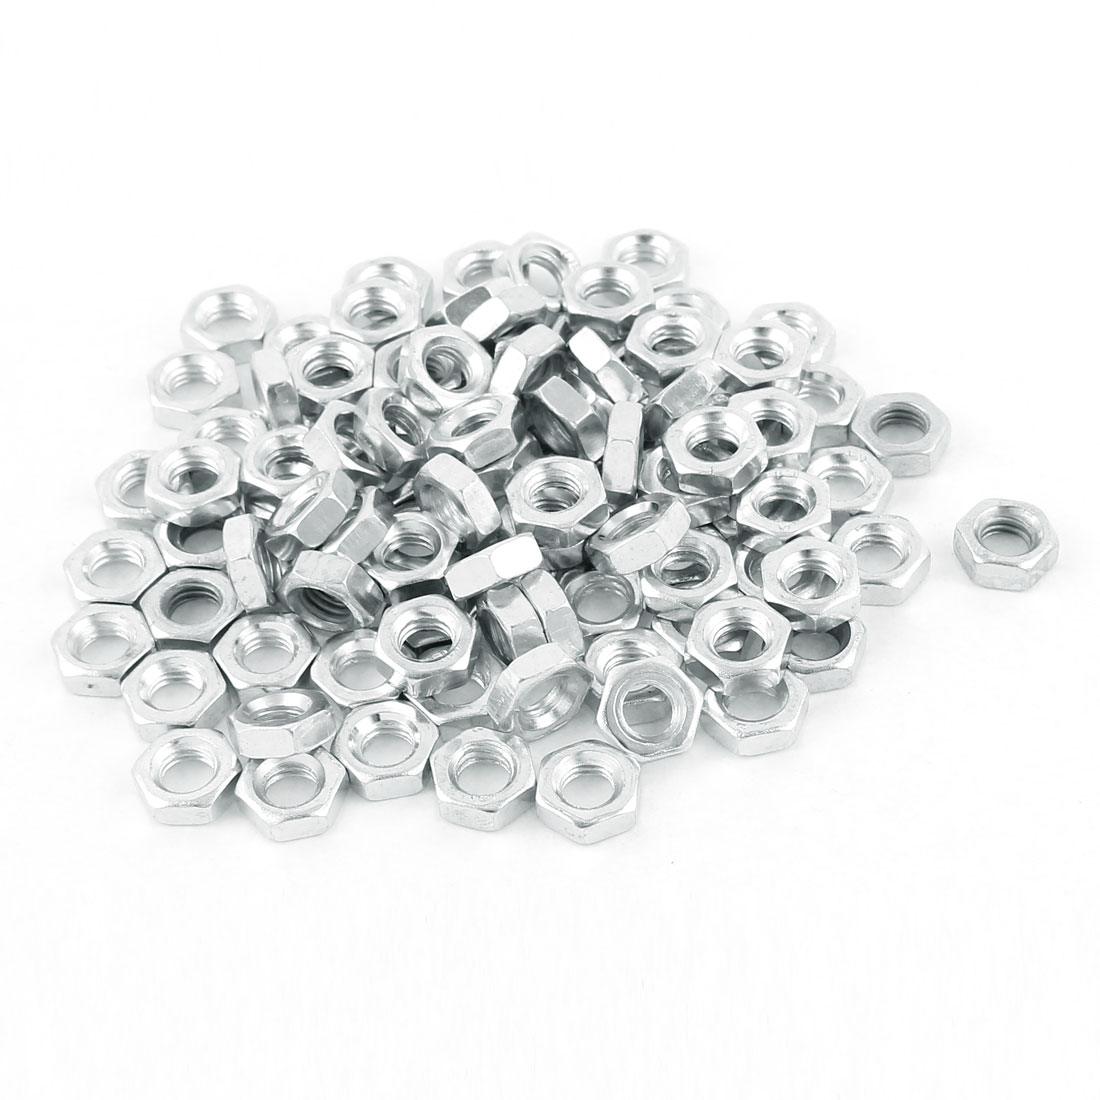 M6 Thread Dia 304 Stainless Steel Metric Hex Nut Screw Cap Fastener Silver Tone 100pcs